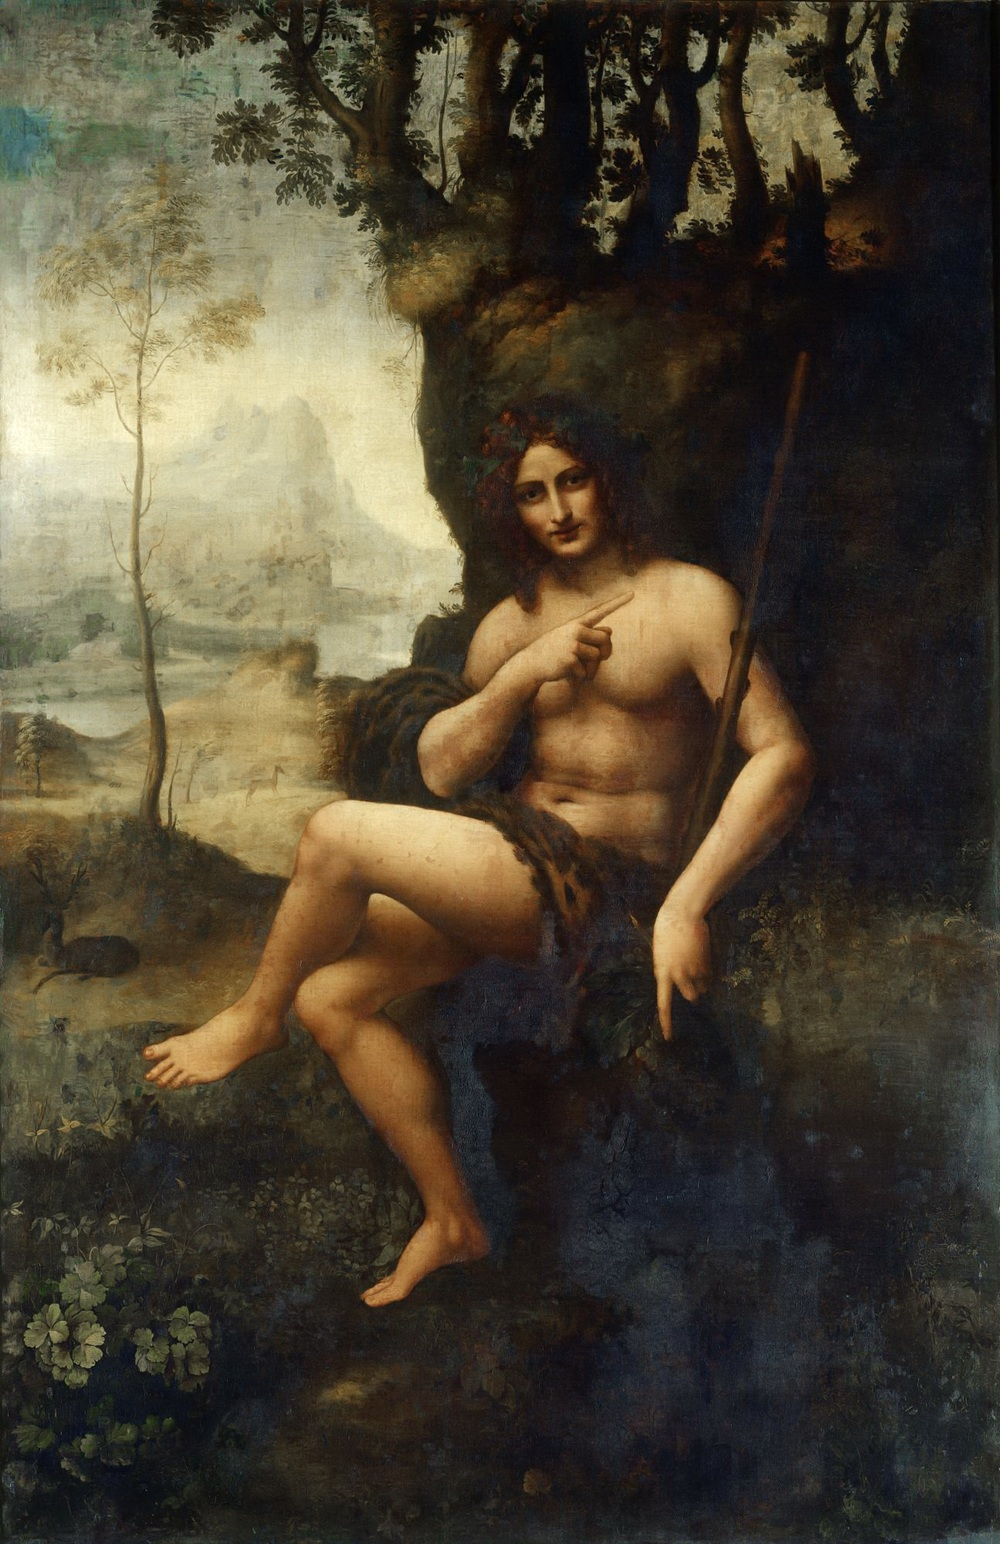 Workshop of Leonardo da Vinci, Bacchus, c.1510-1515, Louvre, Paris